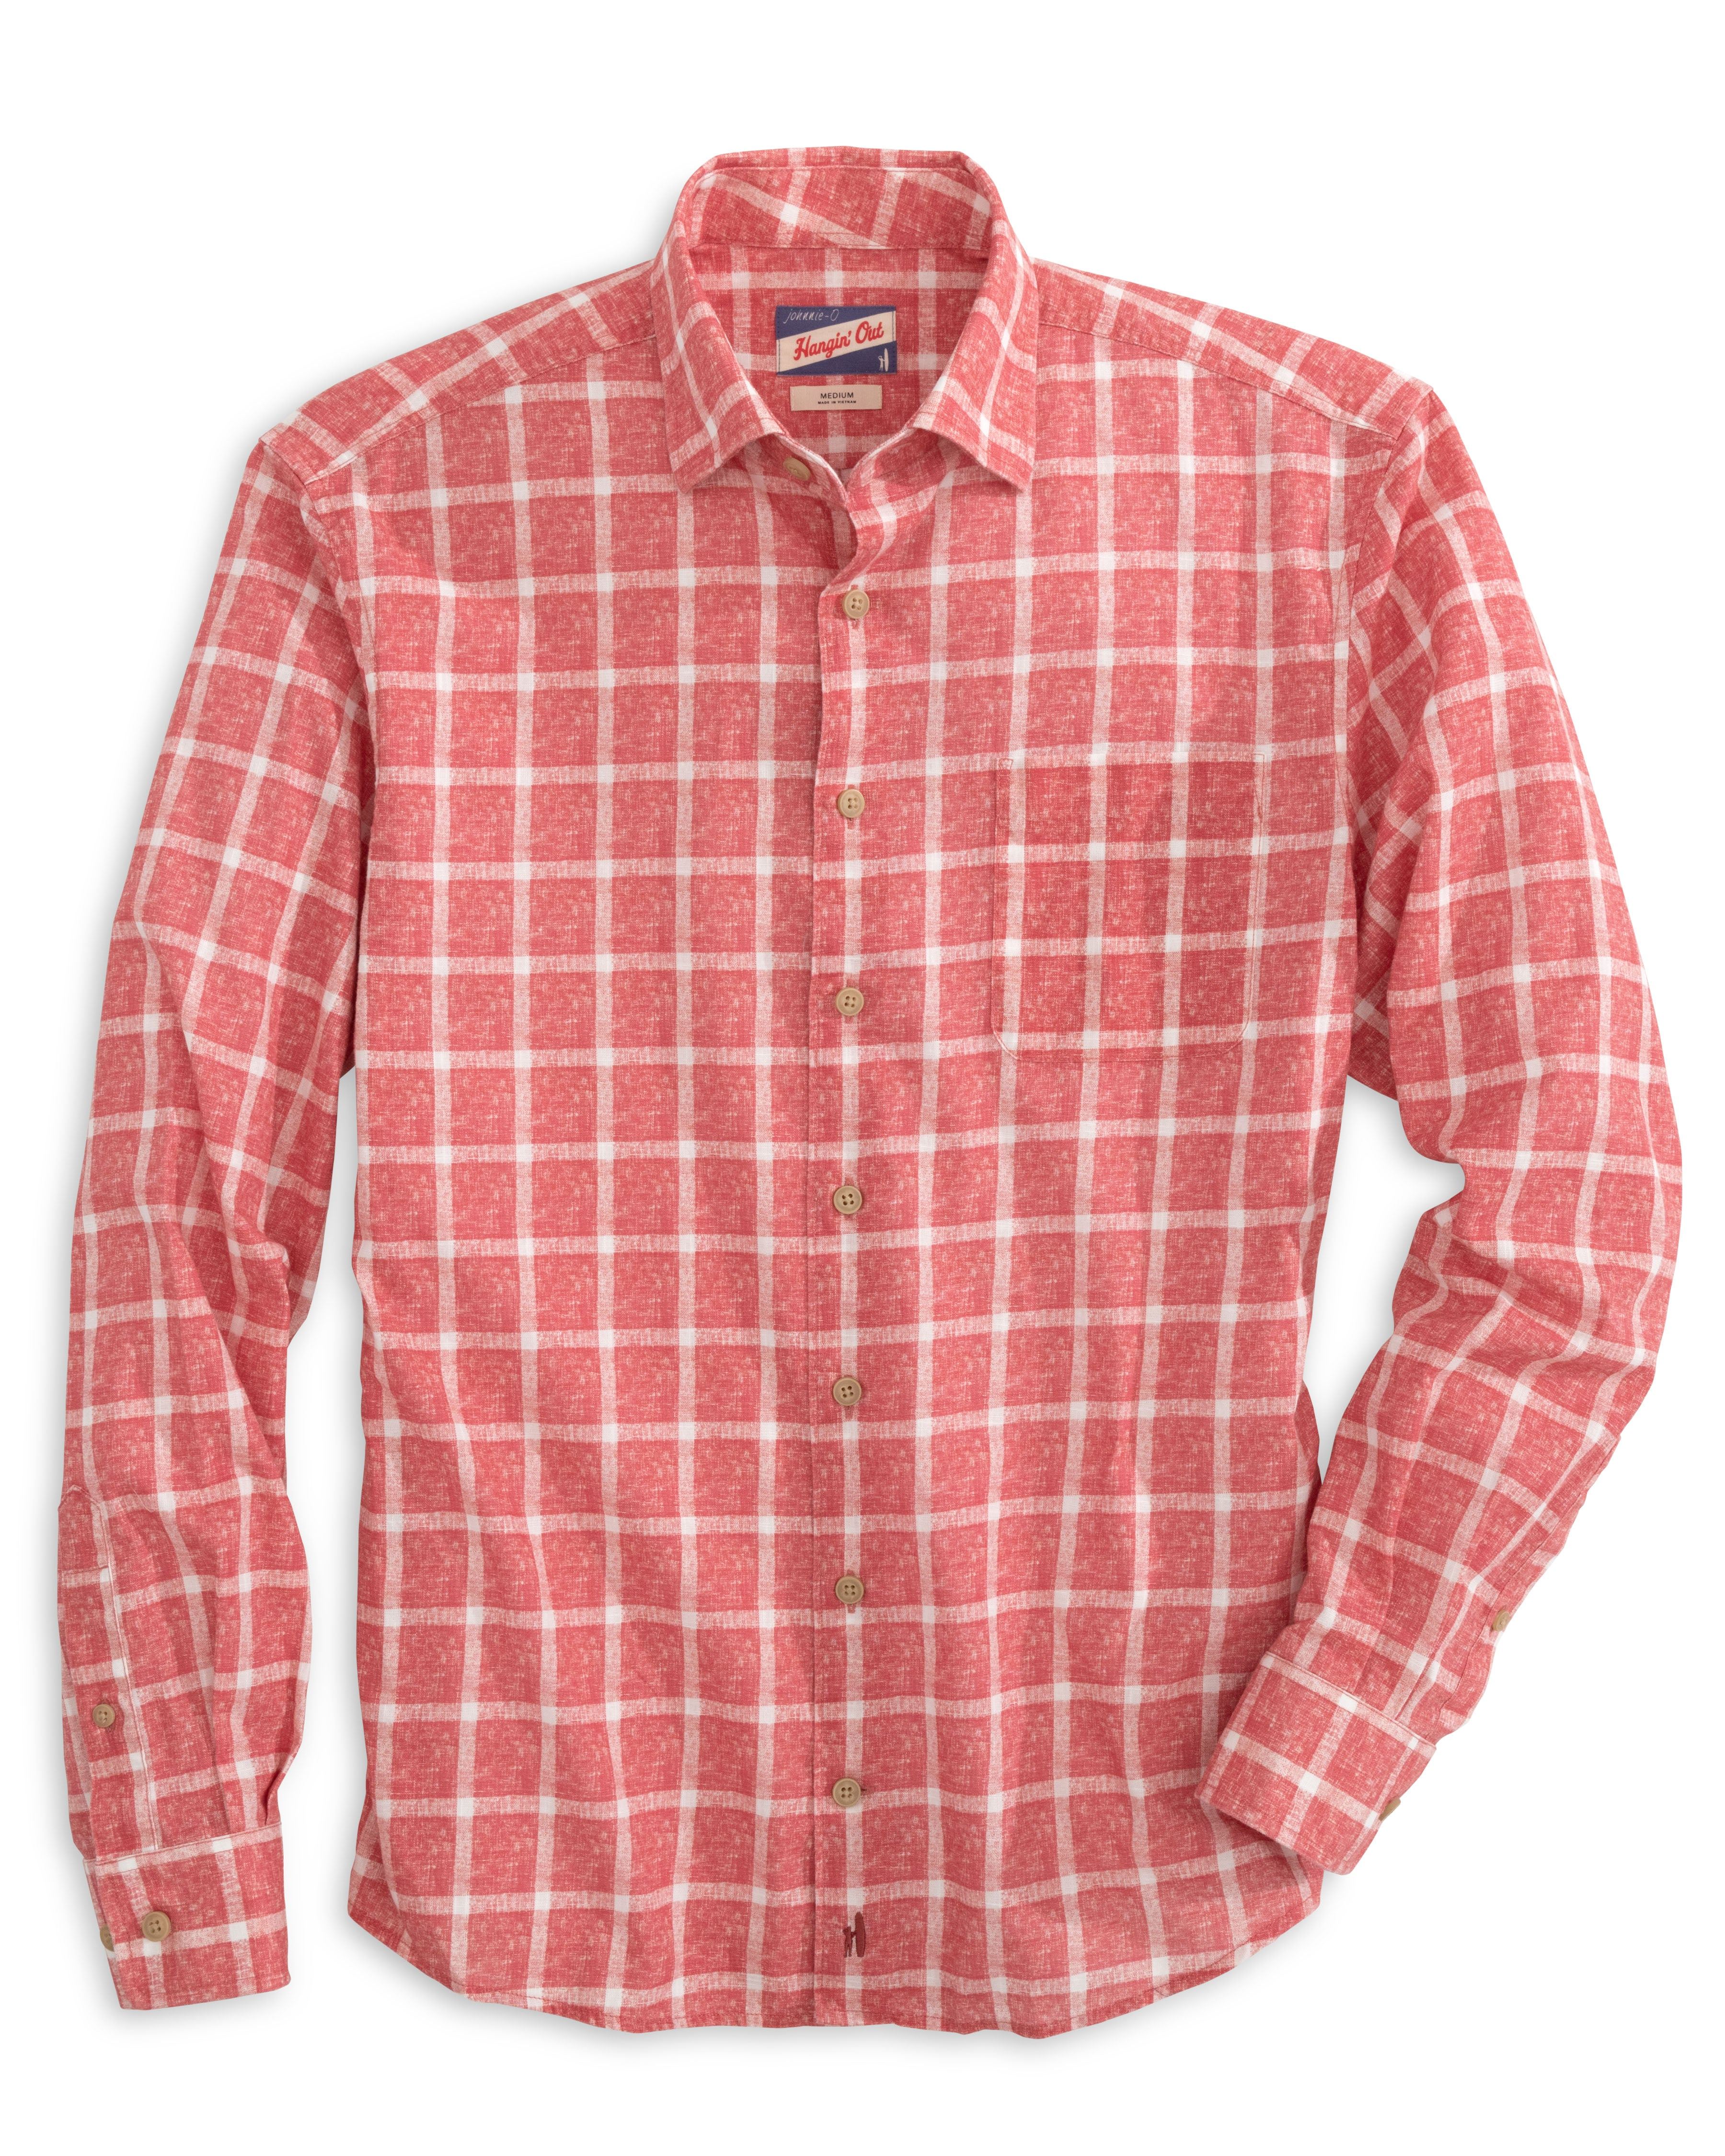 Alto Hangin' Out Button Down Shirt in Malibu Red